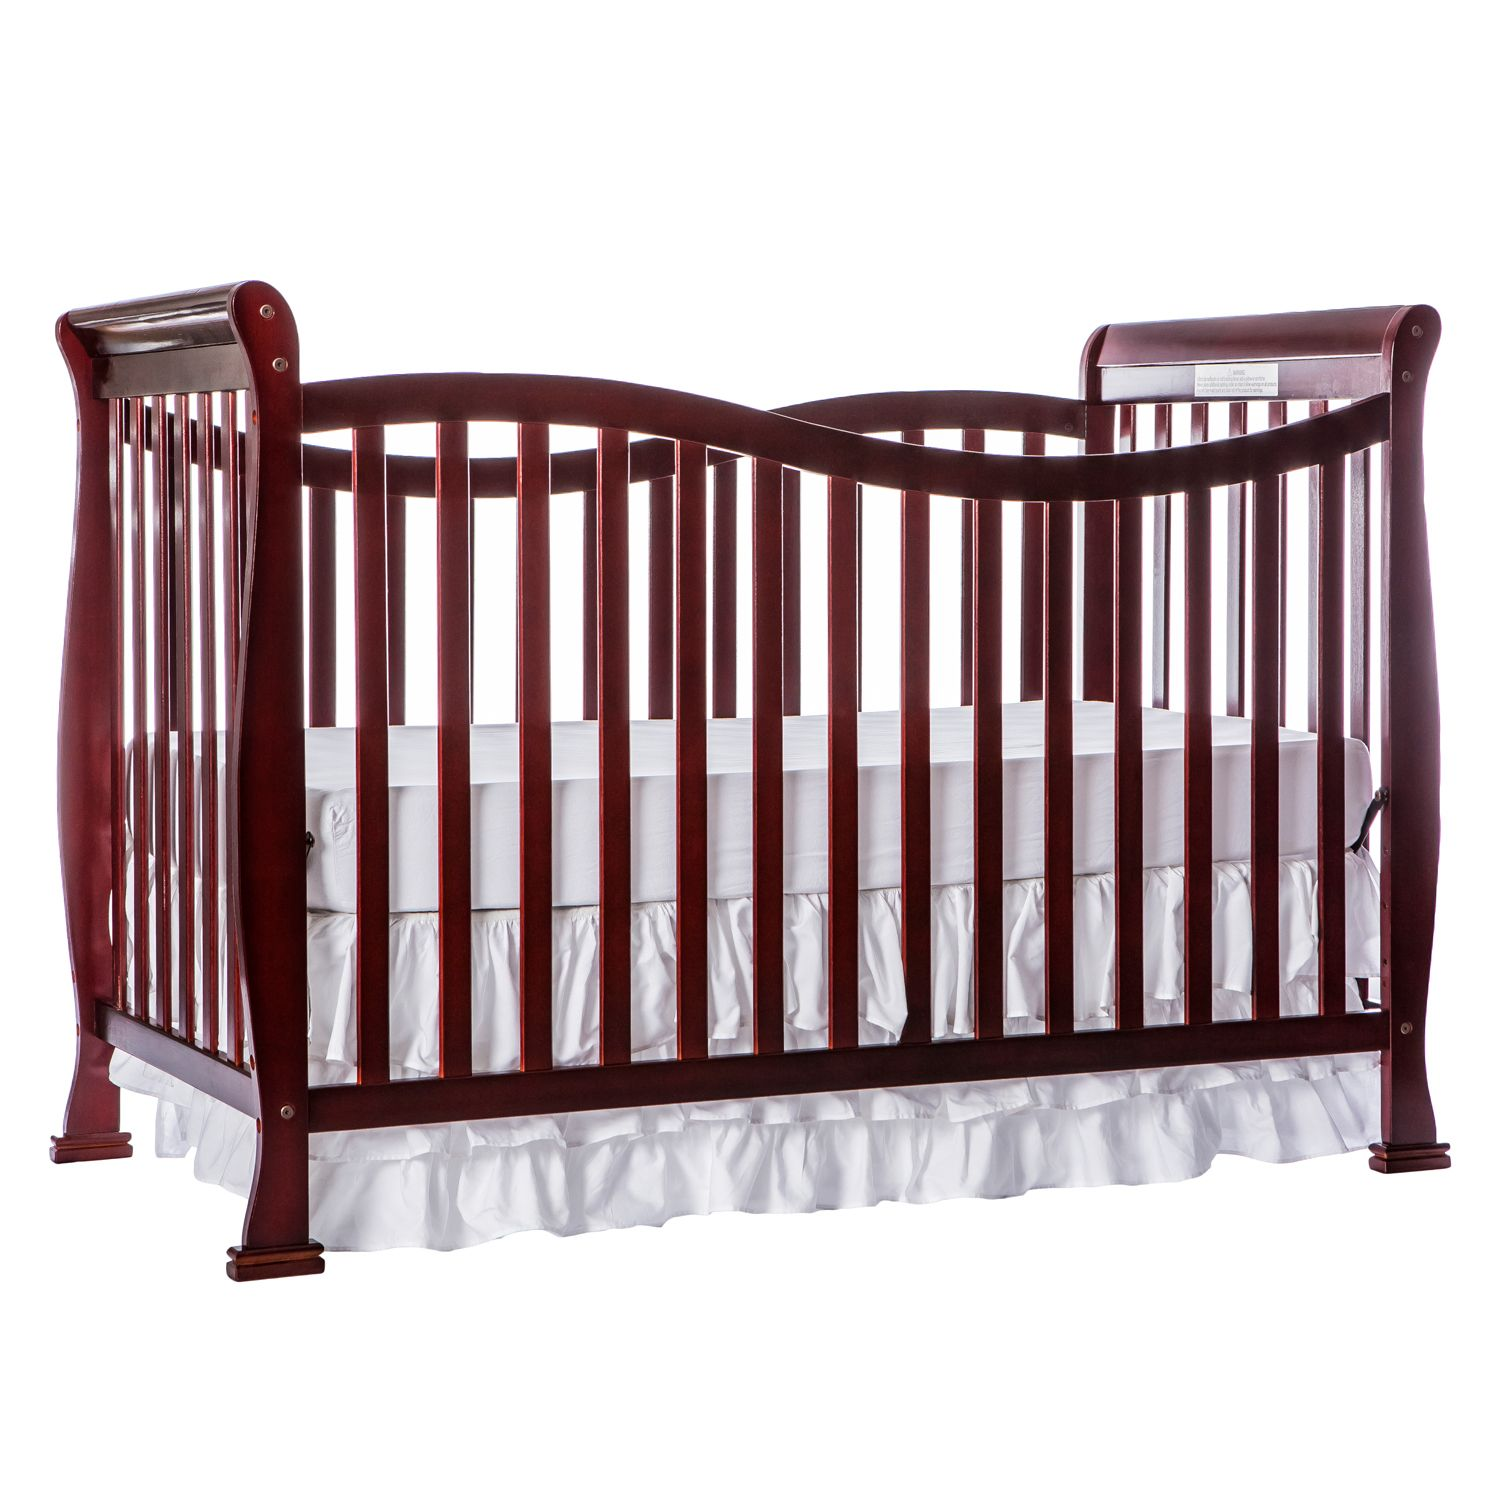 Contemporary white wooden jenny lind crib for your baby to sleep - Contemporary White Wooden Jenny Lind Crib For Your Baby To Sleep 58